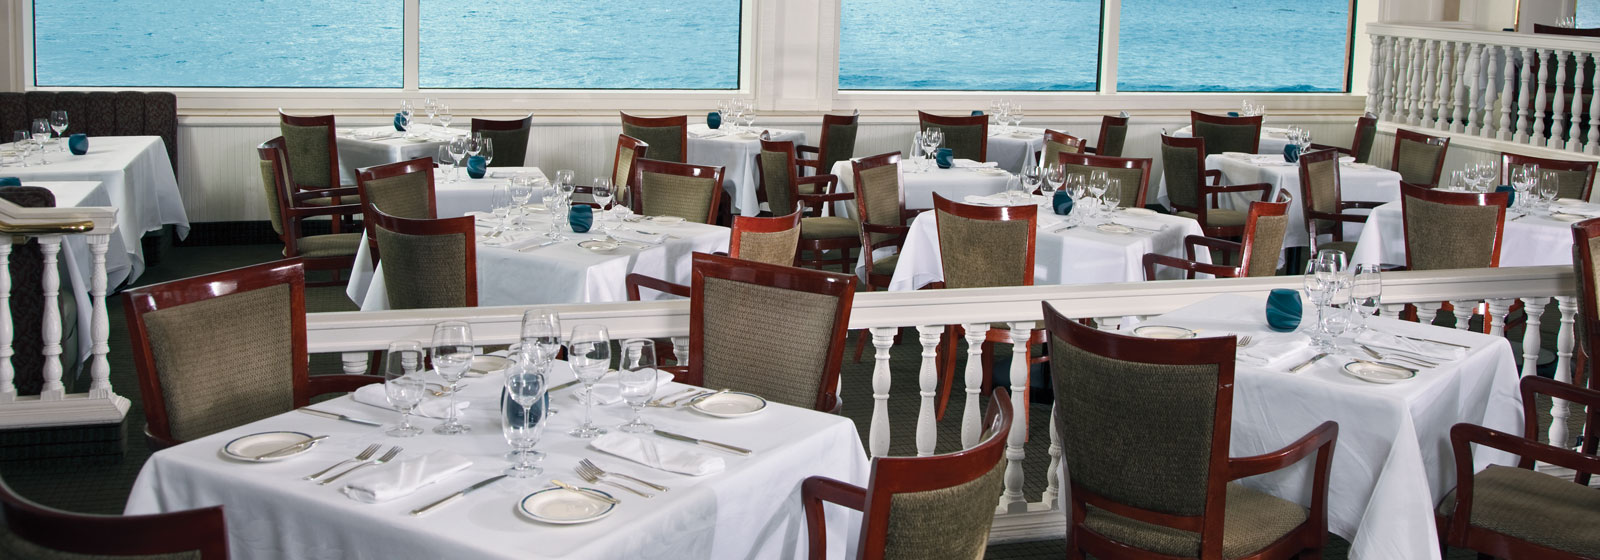 Career Of the Marine Room Restaurant In La Jolla top